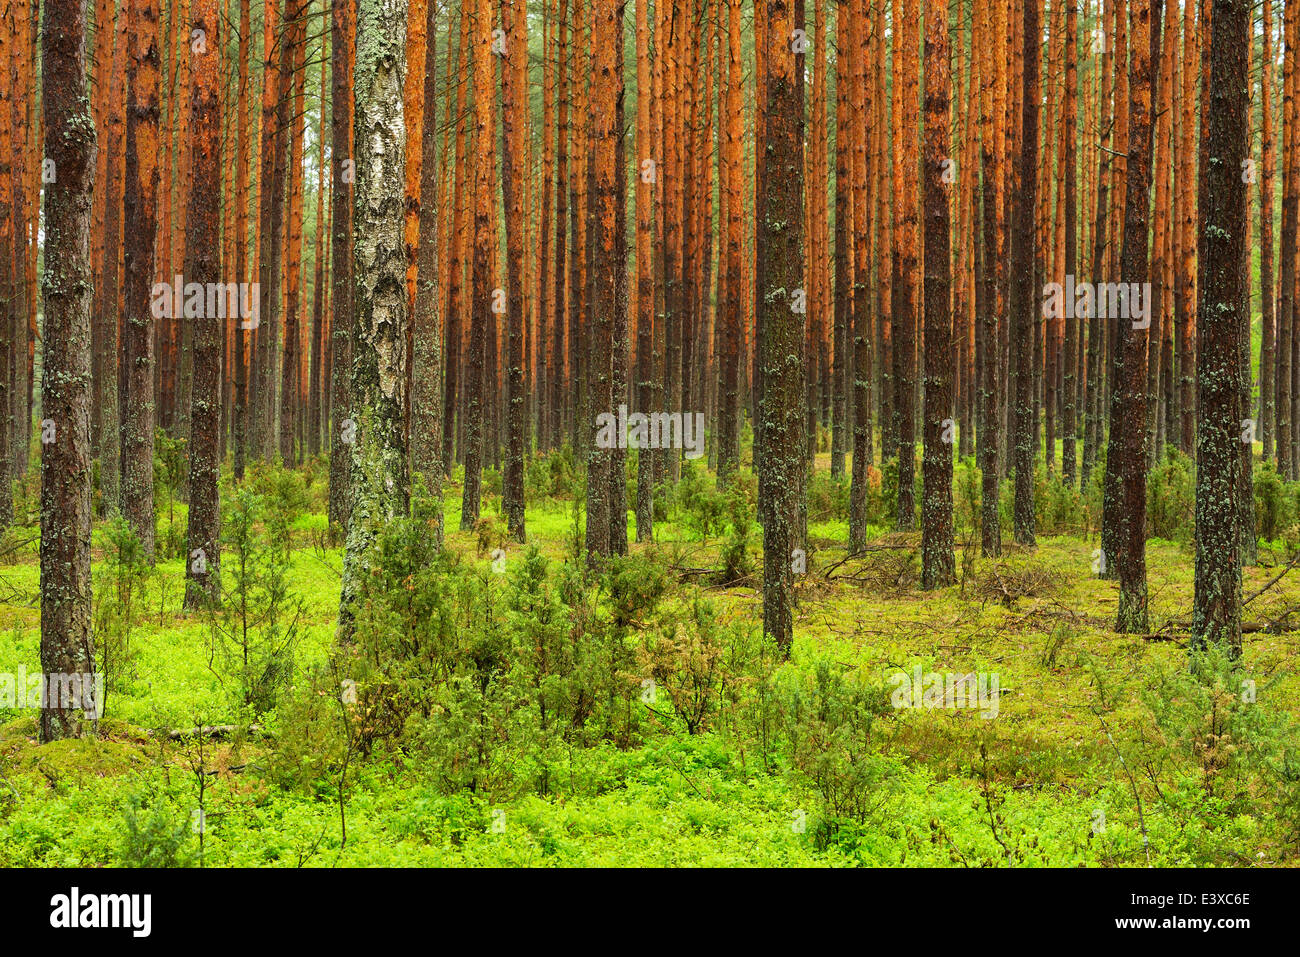 Scots Pines (Pinus sylvestris) in a dense pine forest, Biebrza National Park, Poland - Stock Image